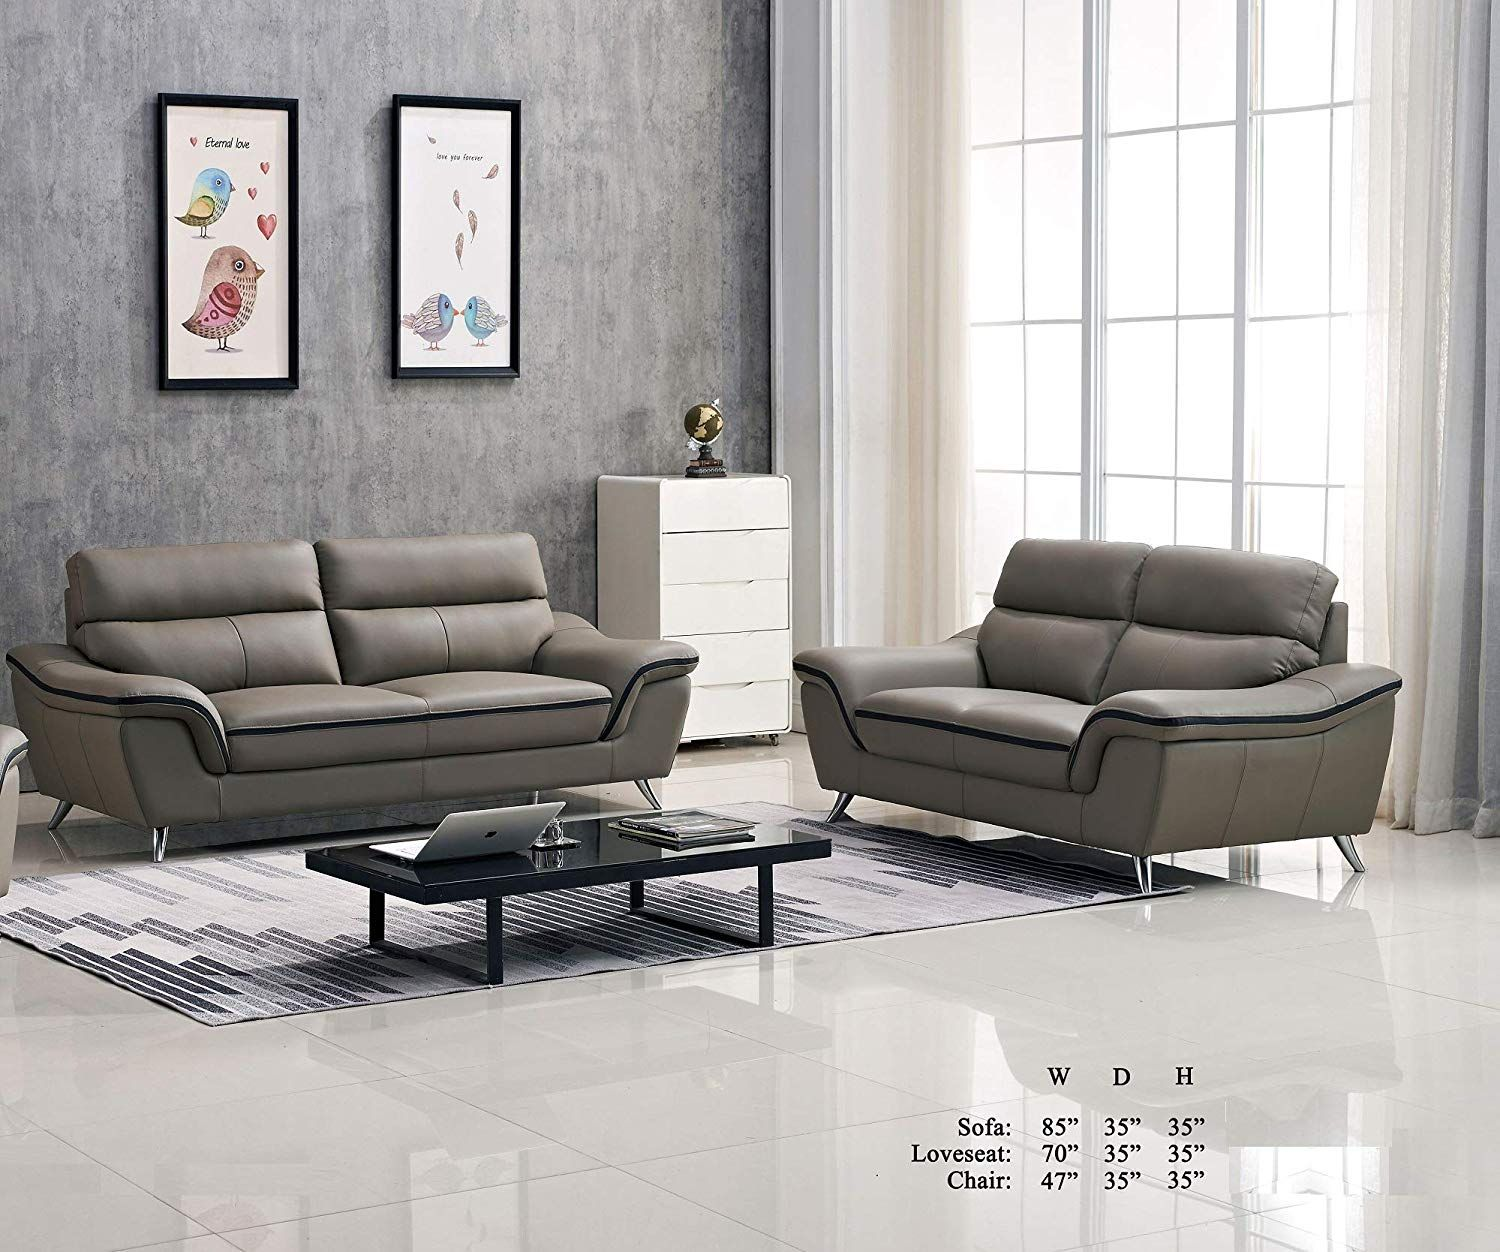 Gorgeous Contemporary Living Room Furniture 2pc Sofa Set Gray Leather Air Black Welt Tri Cushions On Sofa Couch And Loveseat Contemporary Living Room Furniture